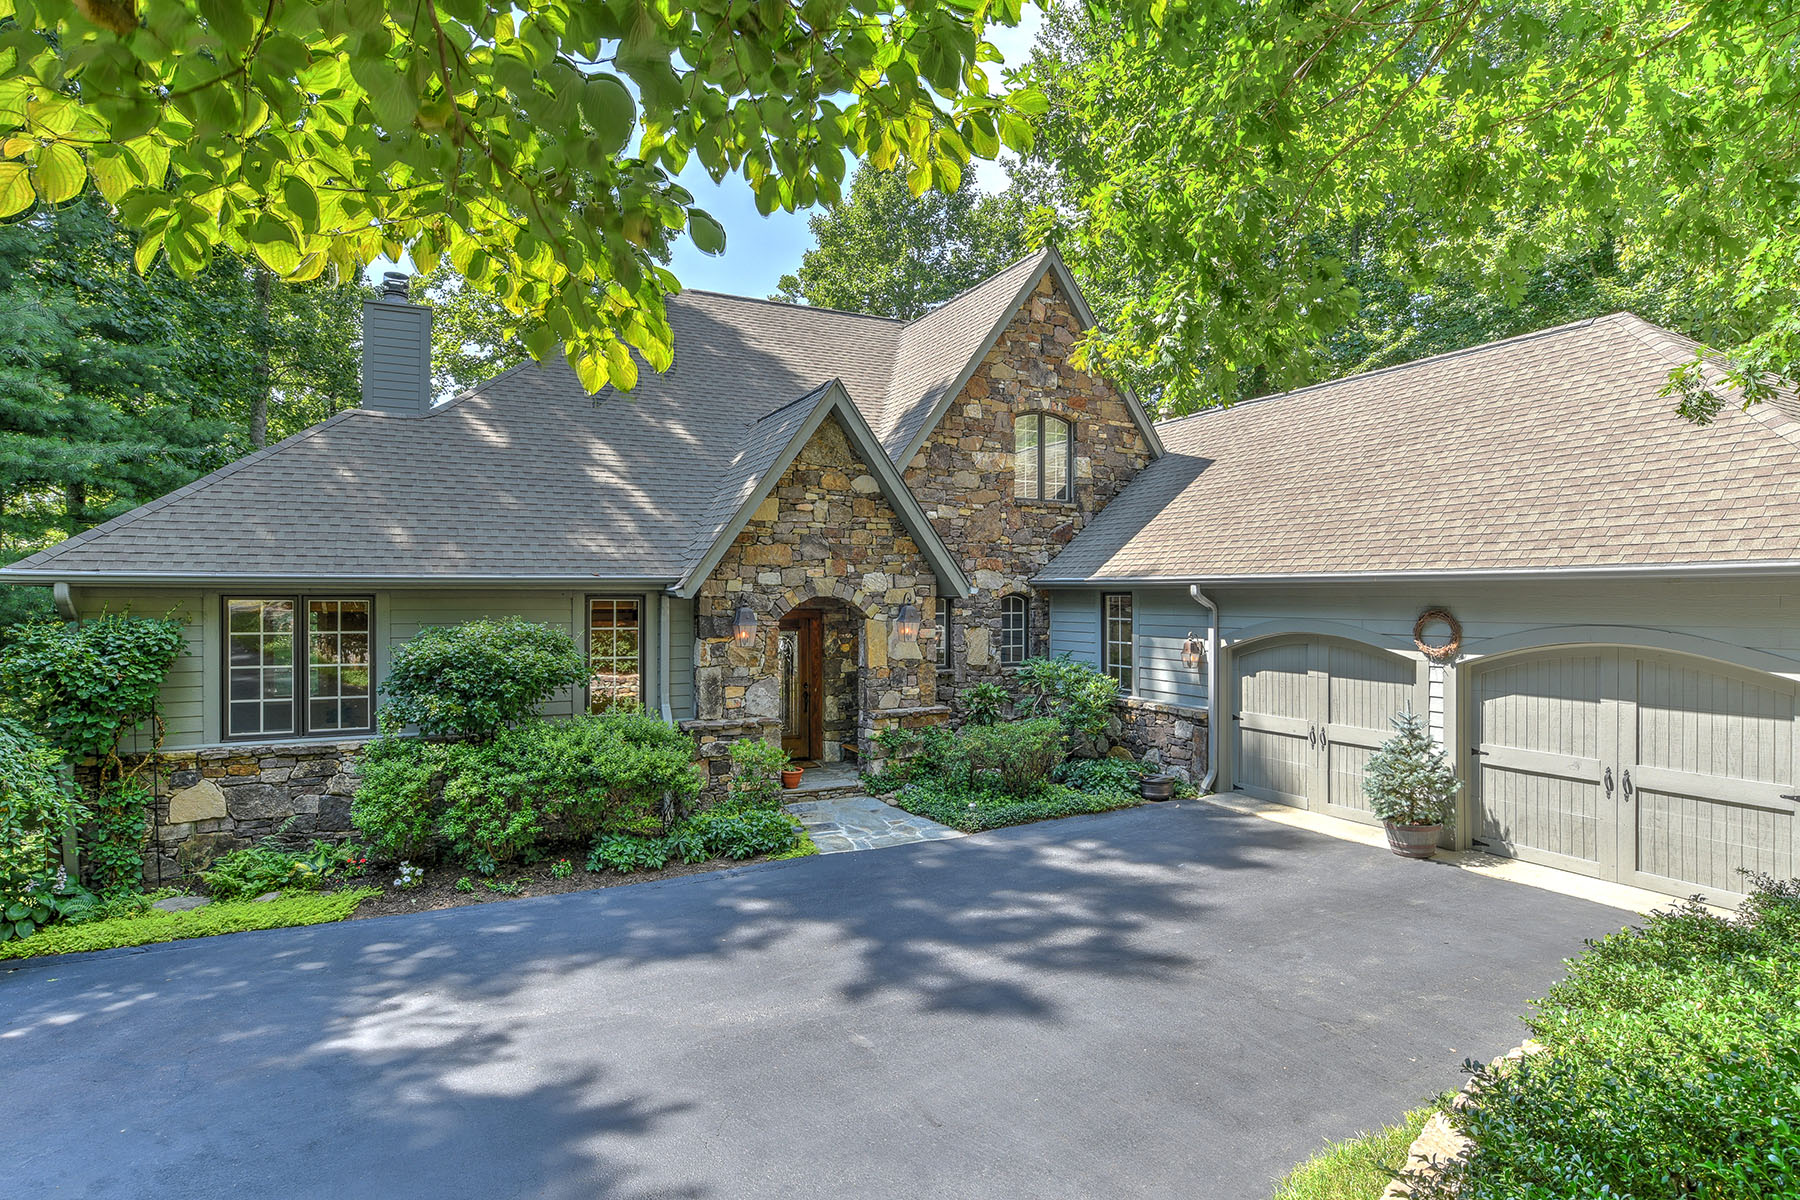 Single Family Homes for Sale at CHAMPION HILLS 159 Chattooga Run Hendersonville, North Carolina 28739 United States